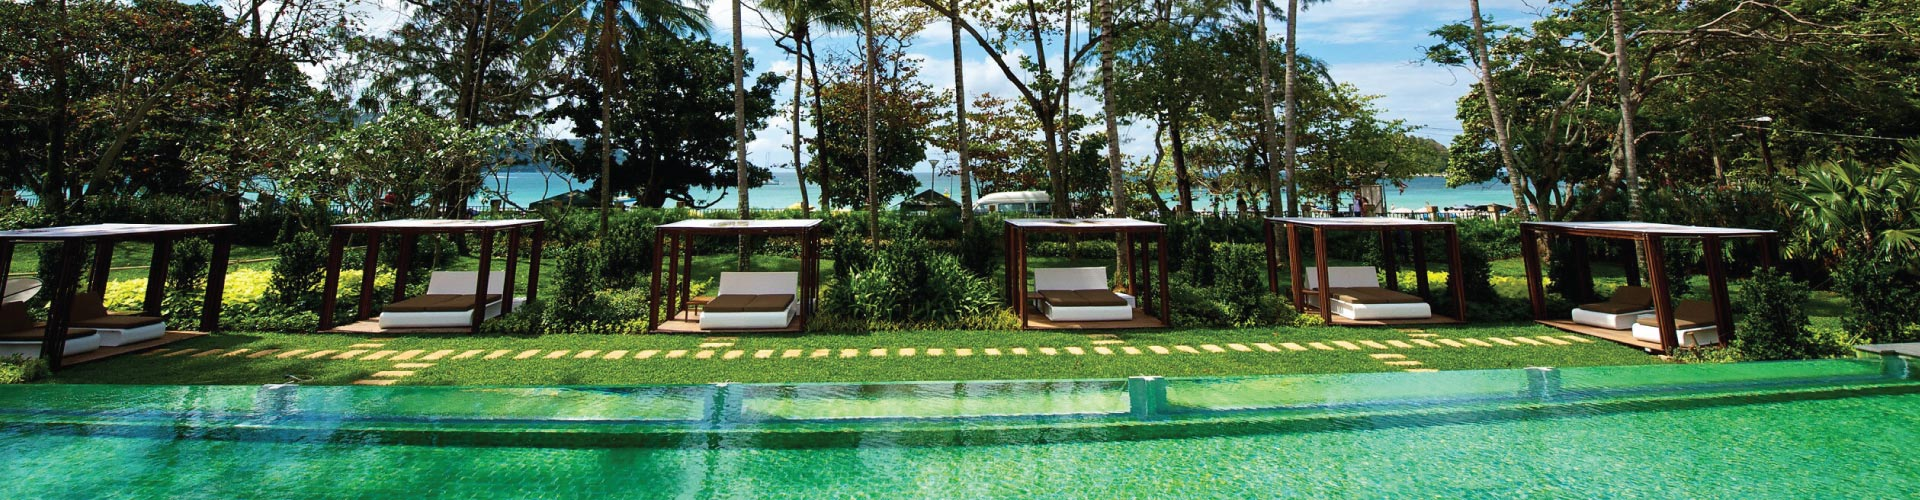 Tour - 4d3n Club Med Phuket - That04alp04kh - R7